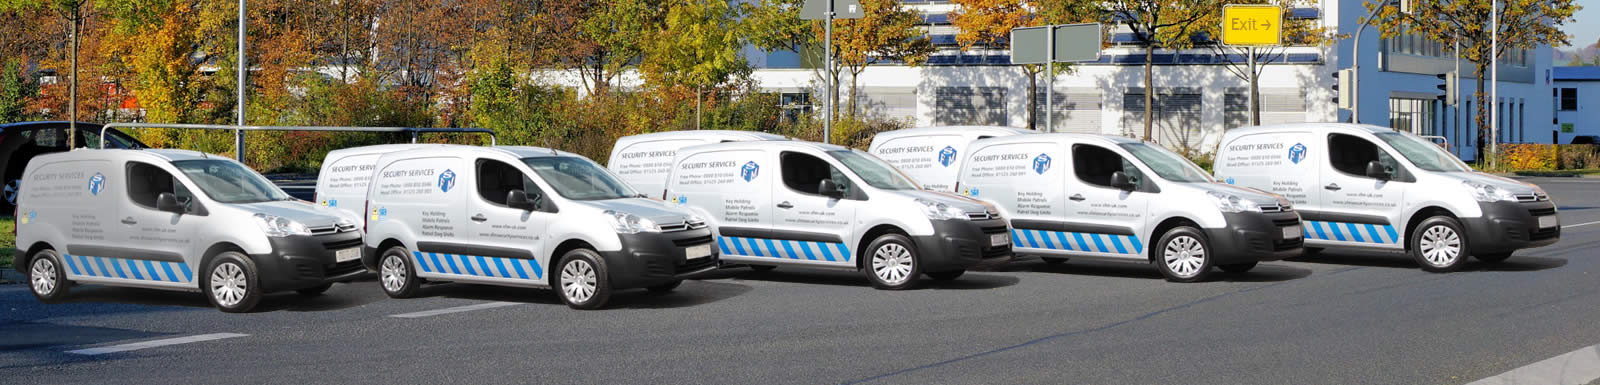 Mobile Patrol Services in Luton